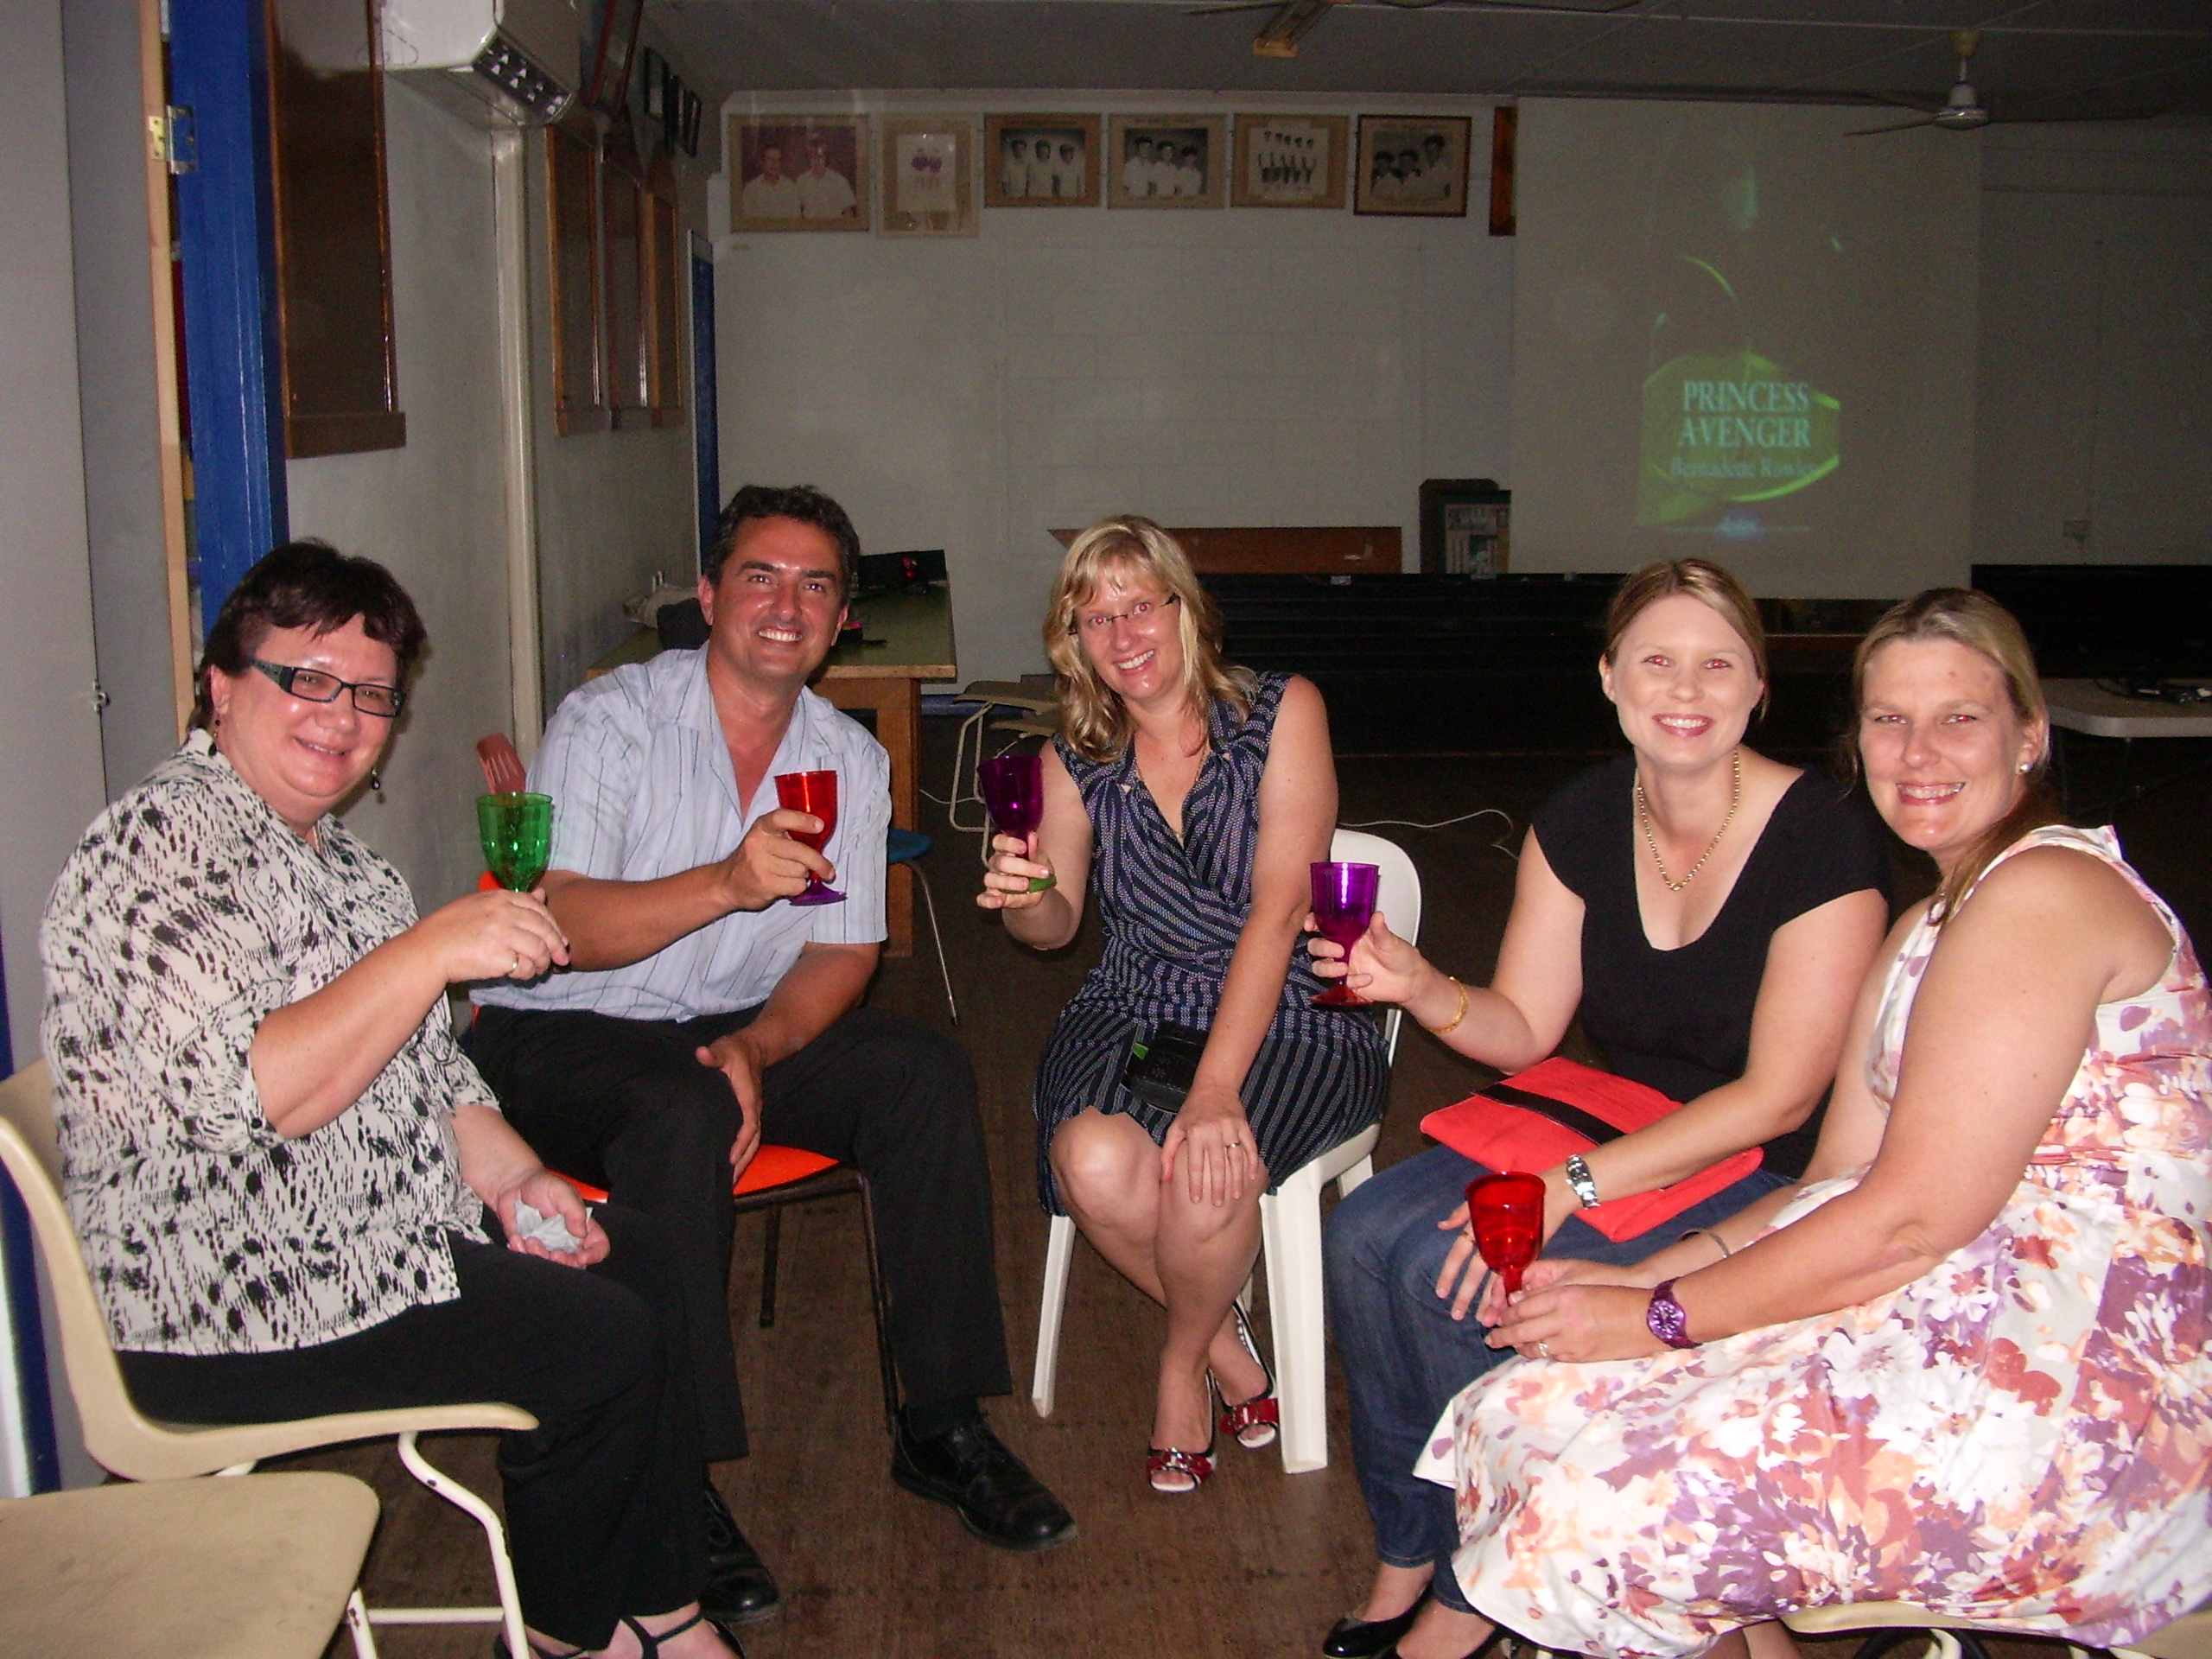 Joanne, Frank, Michelle, Amy and Jacinta